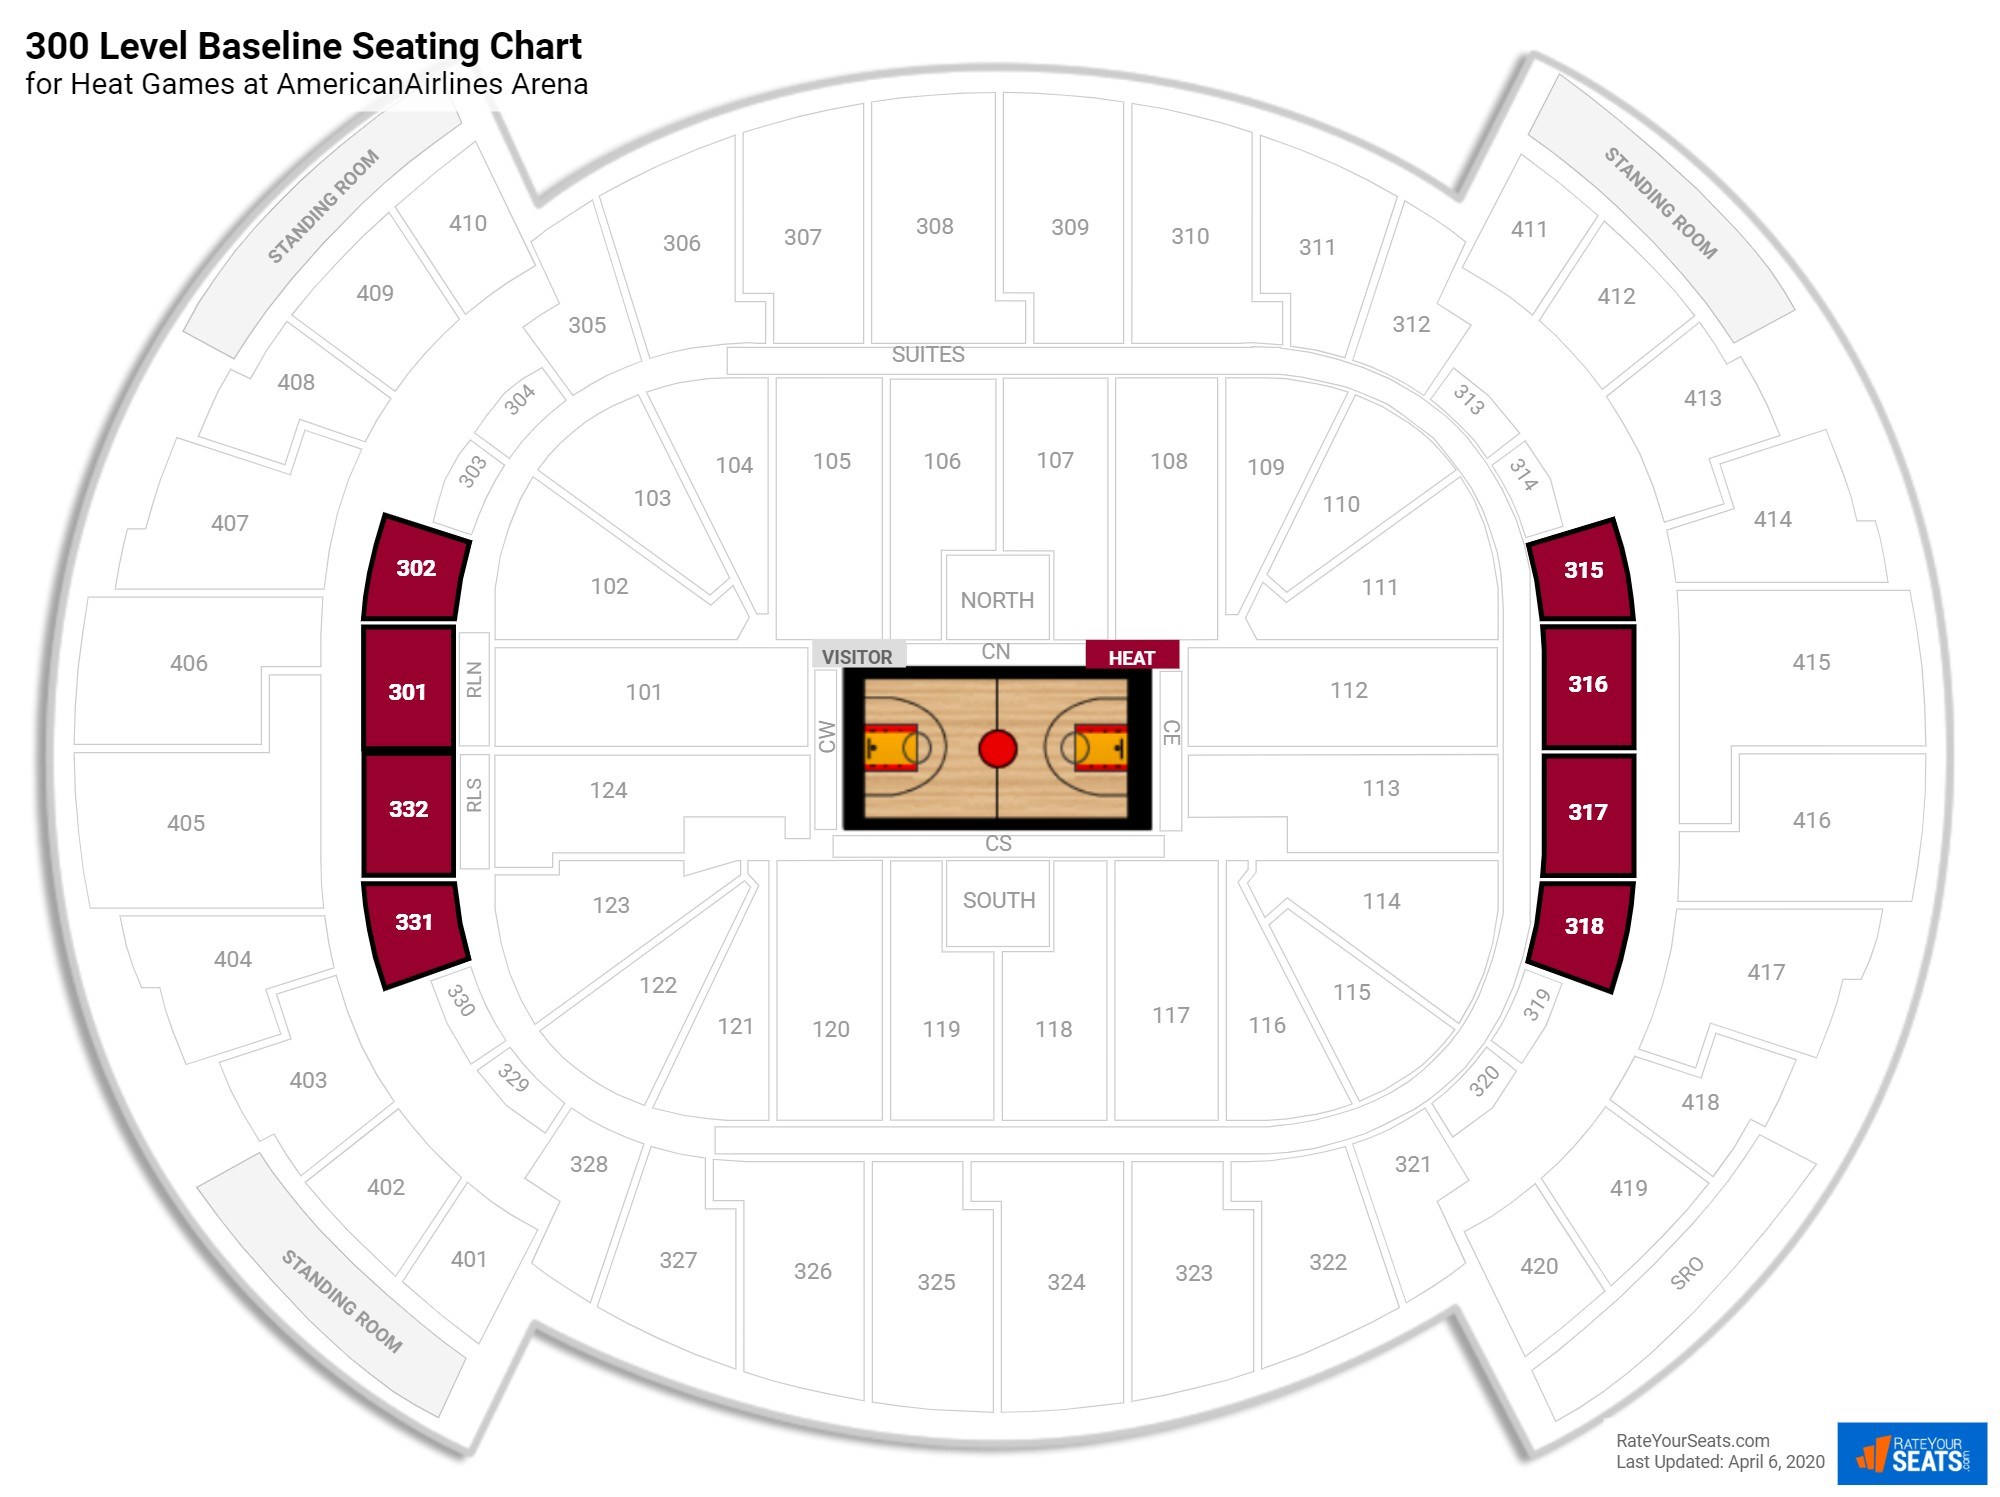 AmericanAirlines Arena 300 Level Baseline seating chart